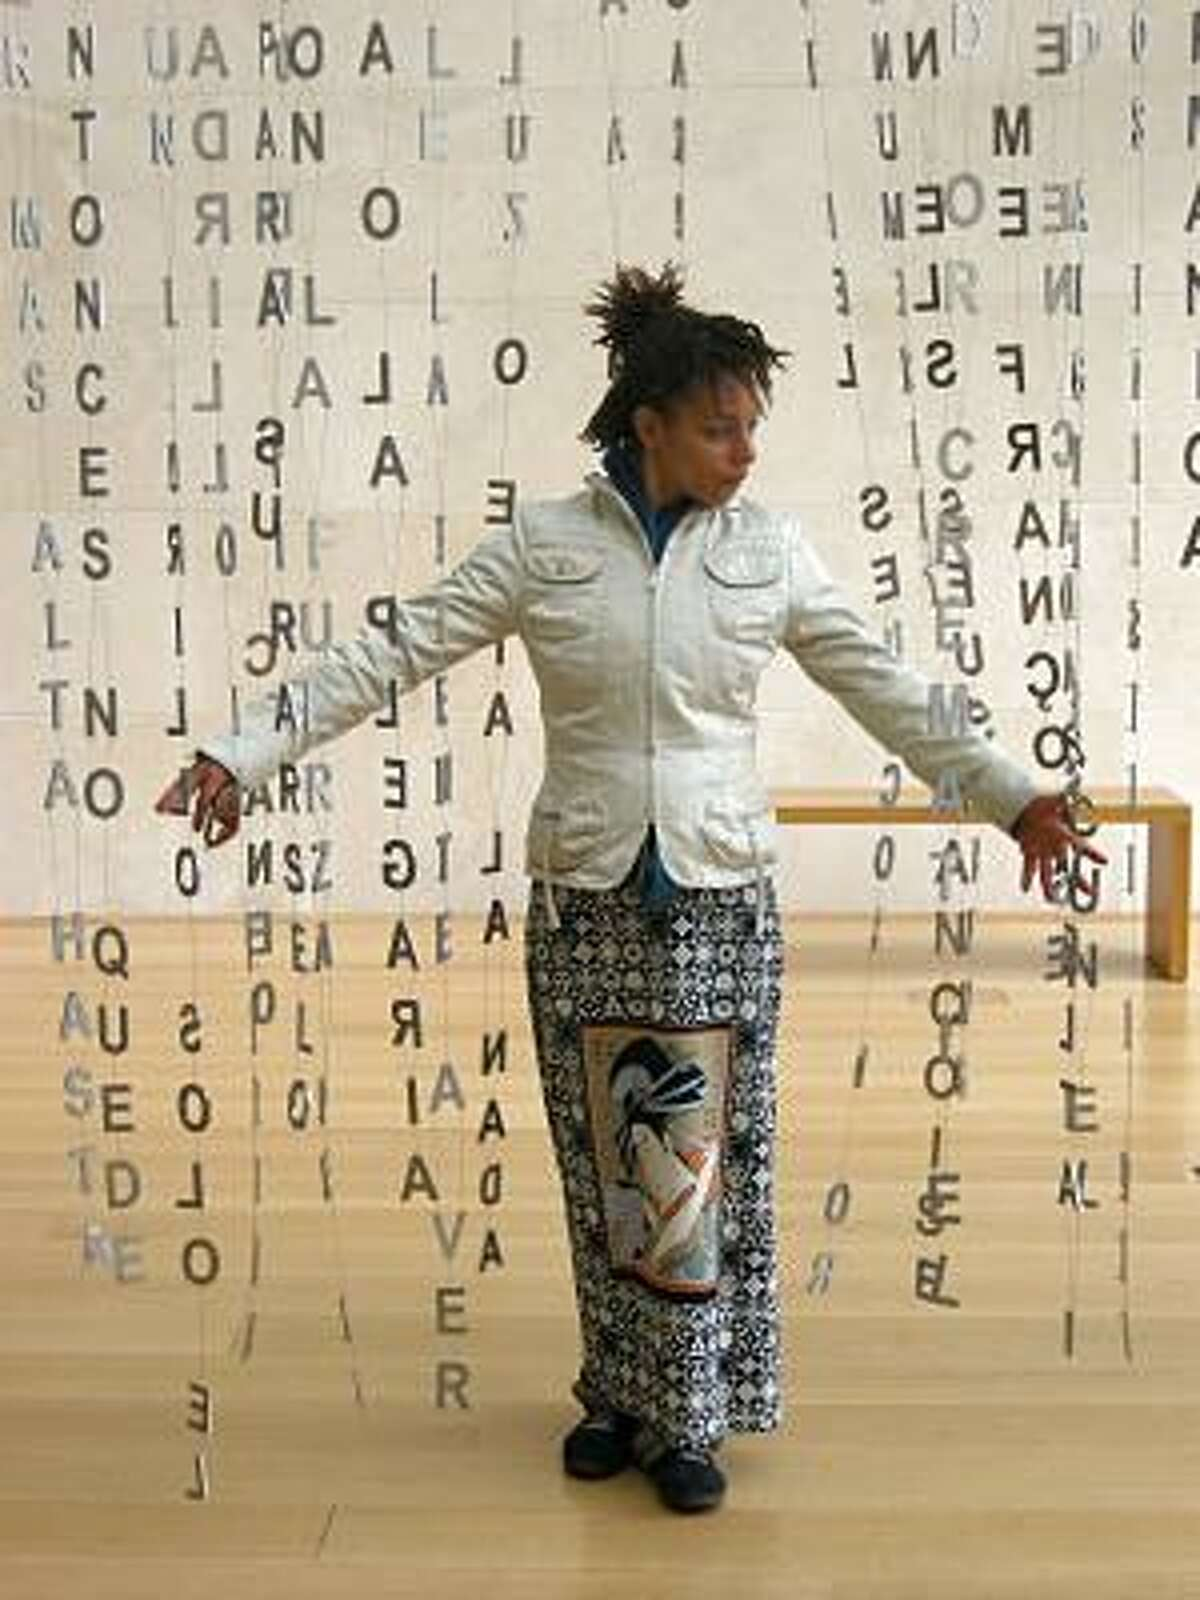 Cheray O'Neal of Los Angeles examines Jaume Plensa's 29 Poems, on exhibit at the Nasher Sculpture Center through May 16.